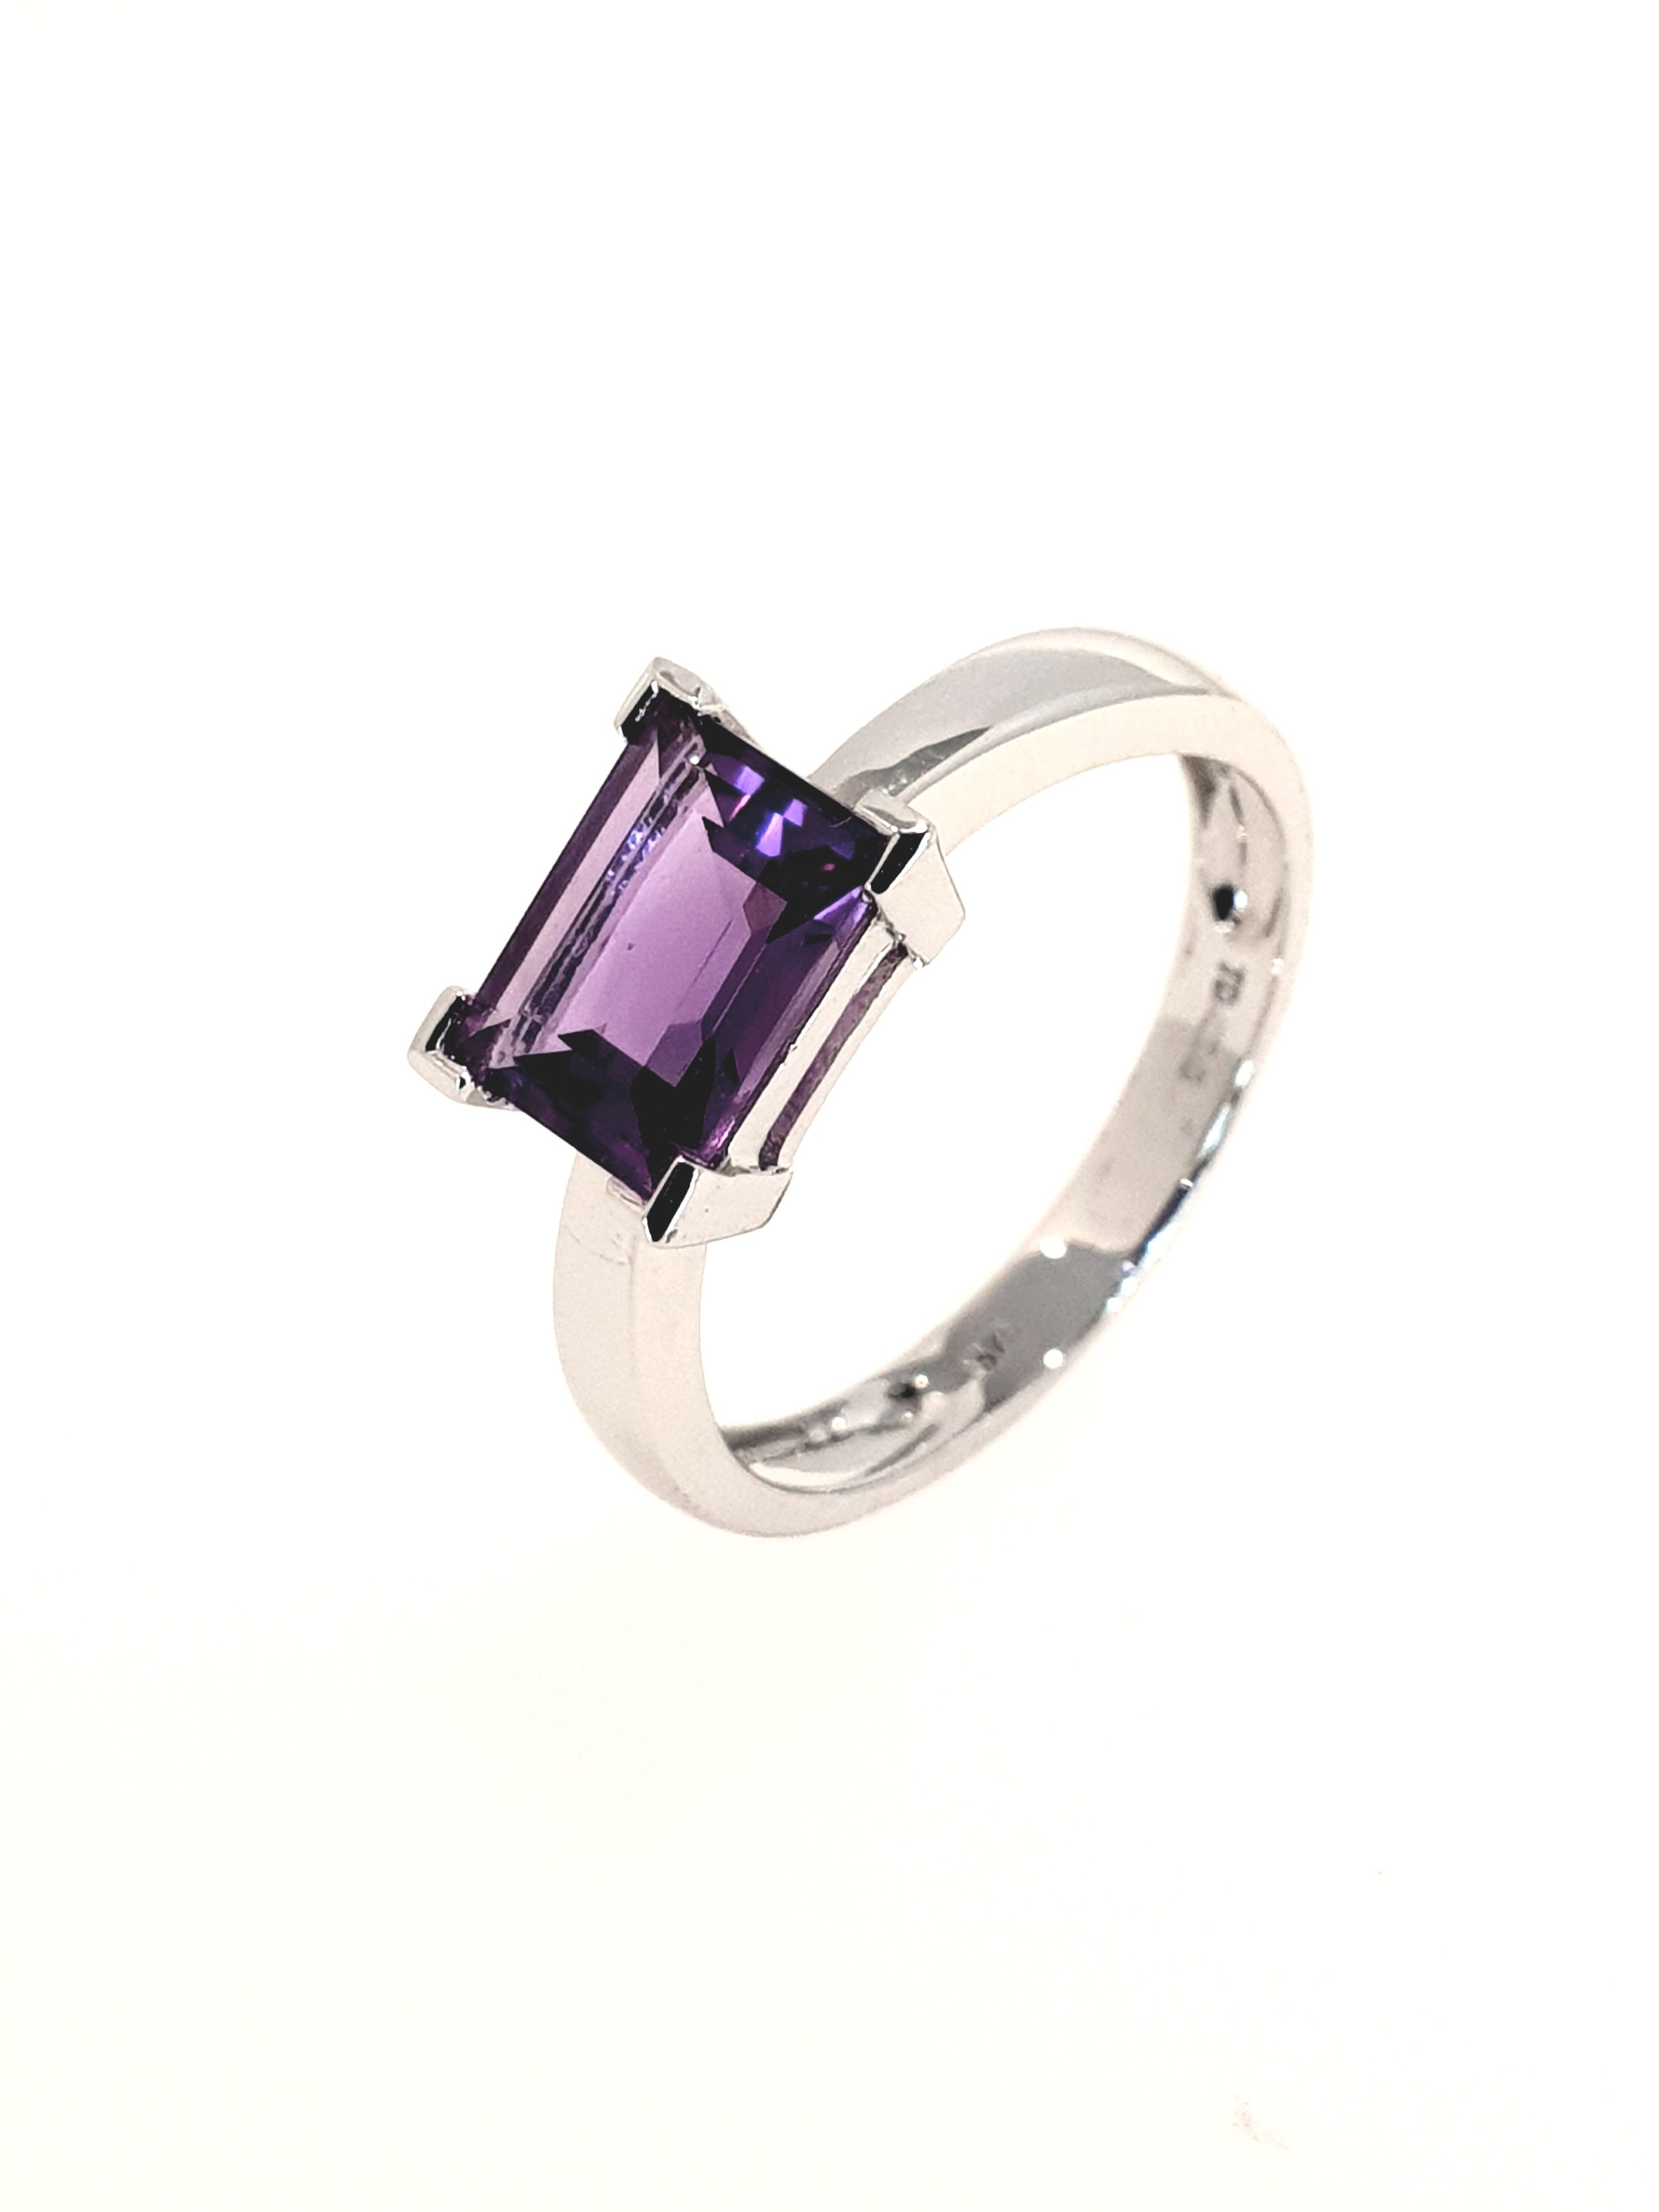 9ct White Gold Amethyst Ring  Stock Code: G1963  £300